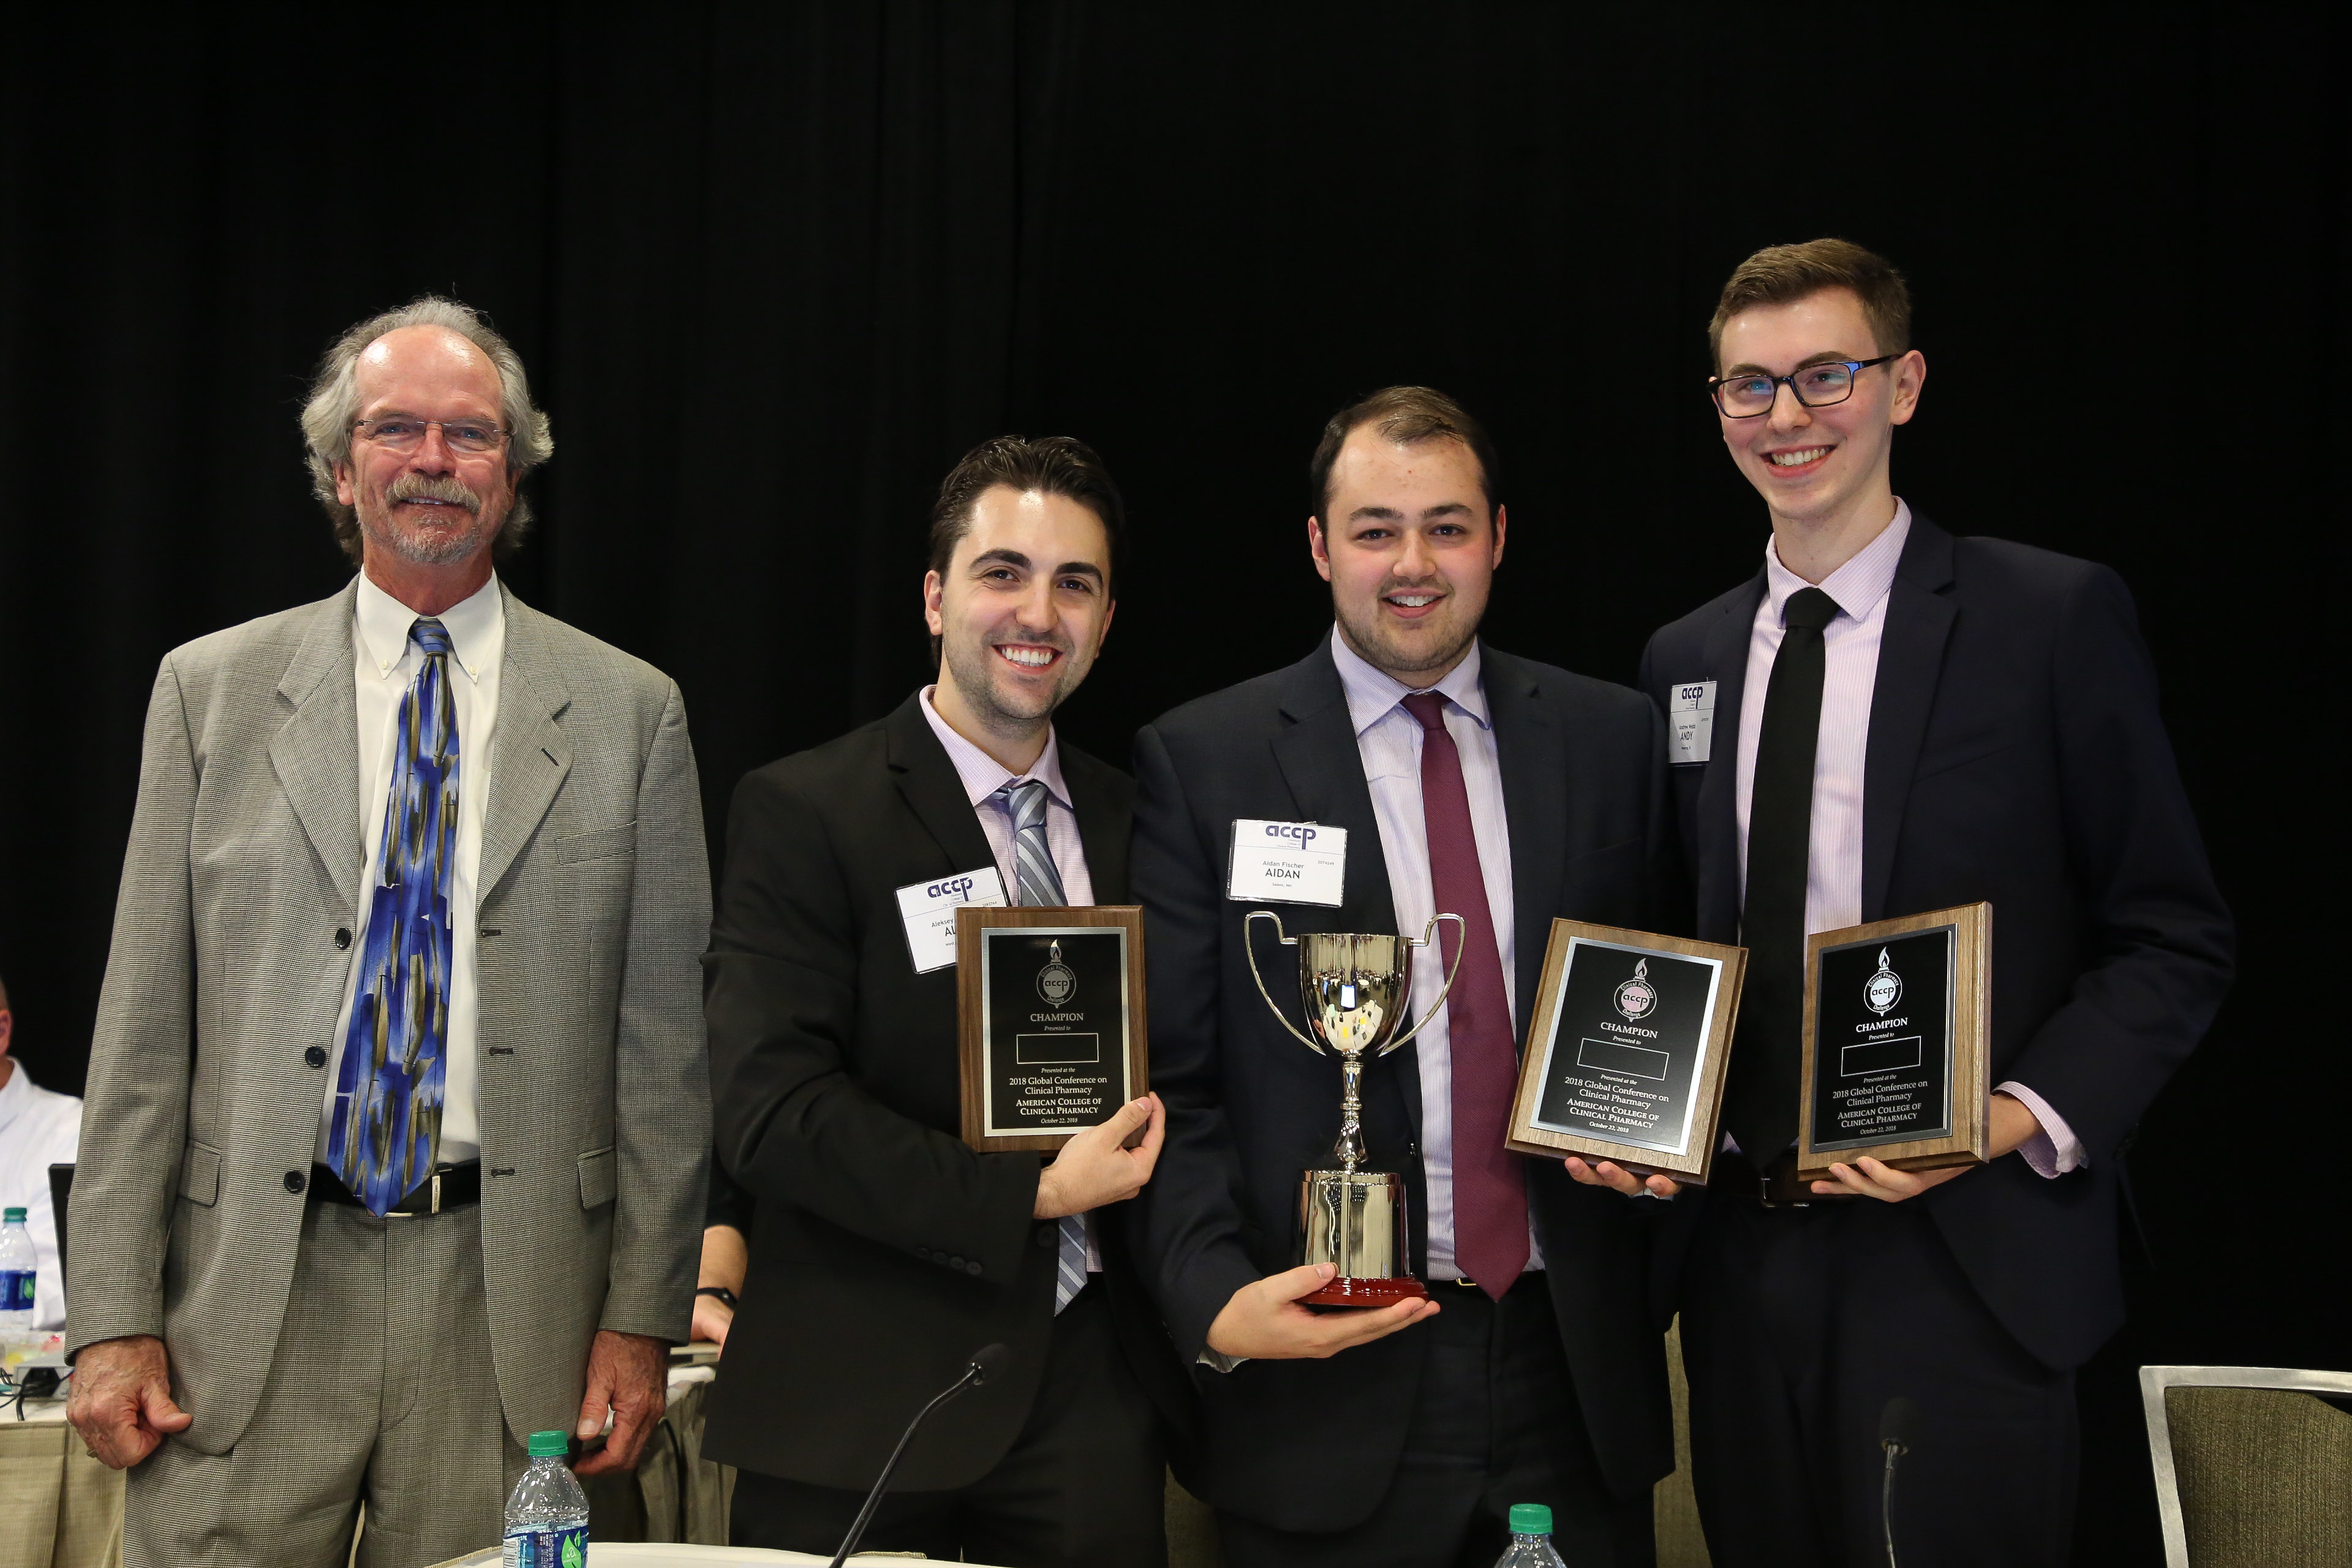 University Of Rhode Island Team Crowned 2018 Accp Clinical Pharmacy Challenge Champion